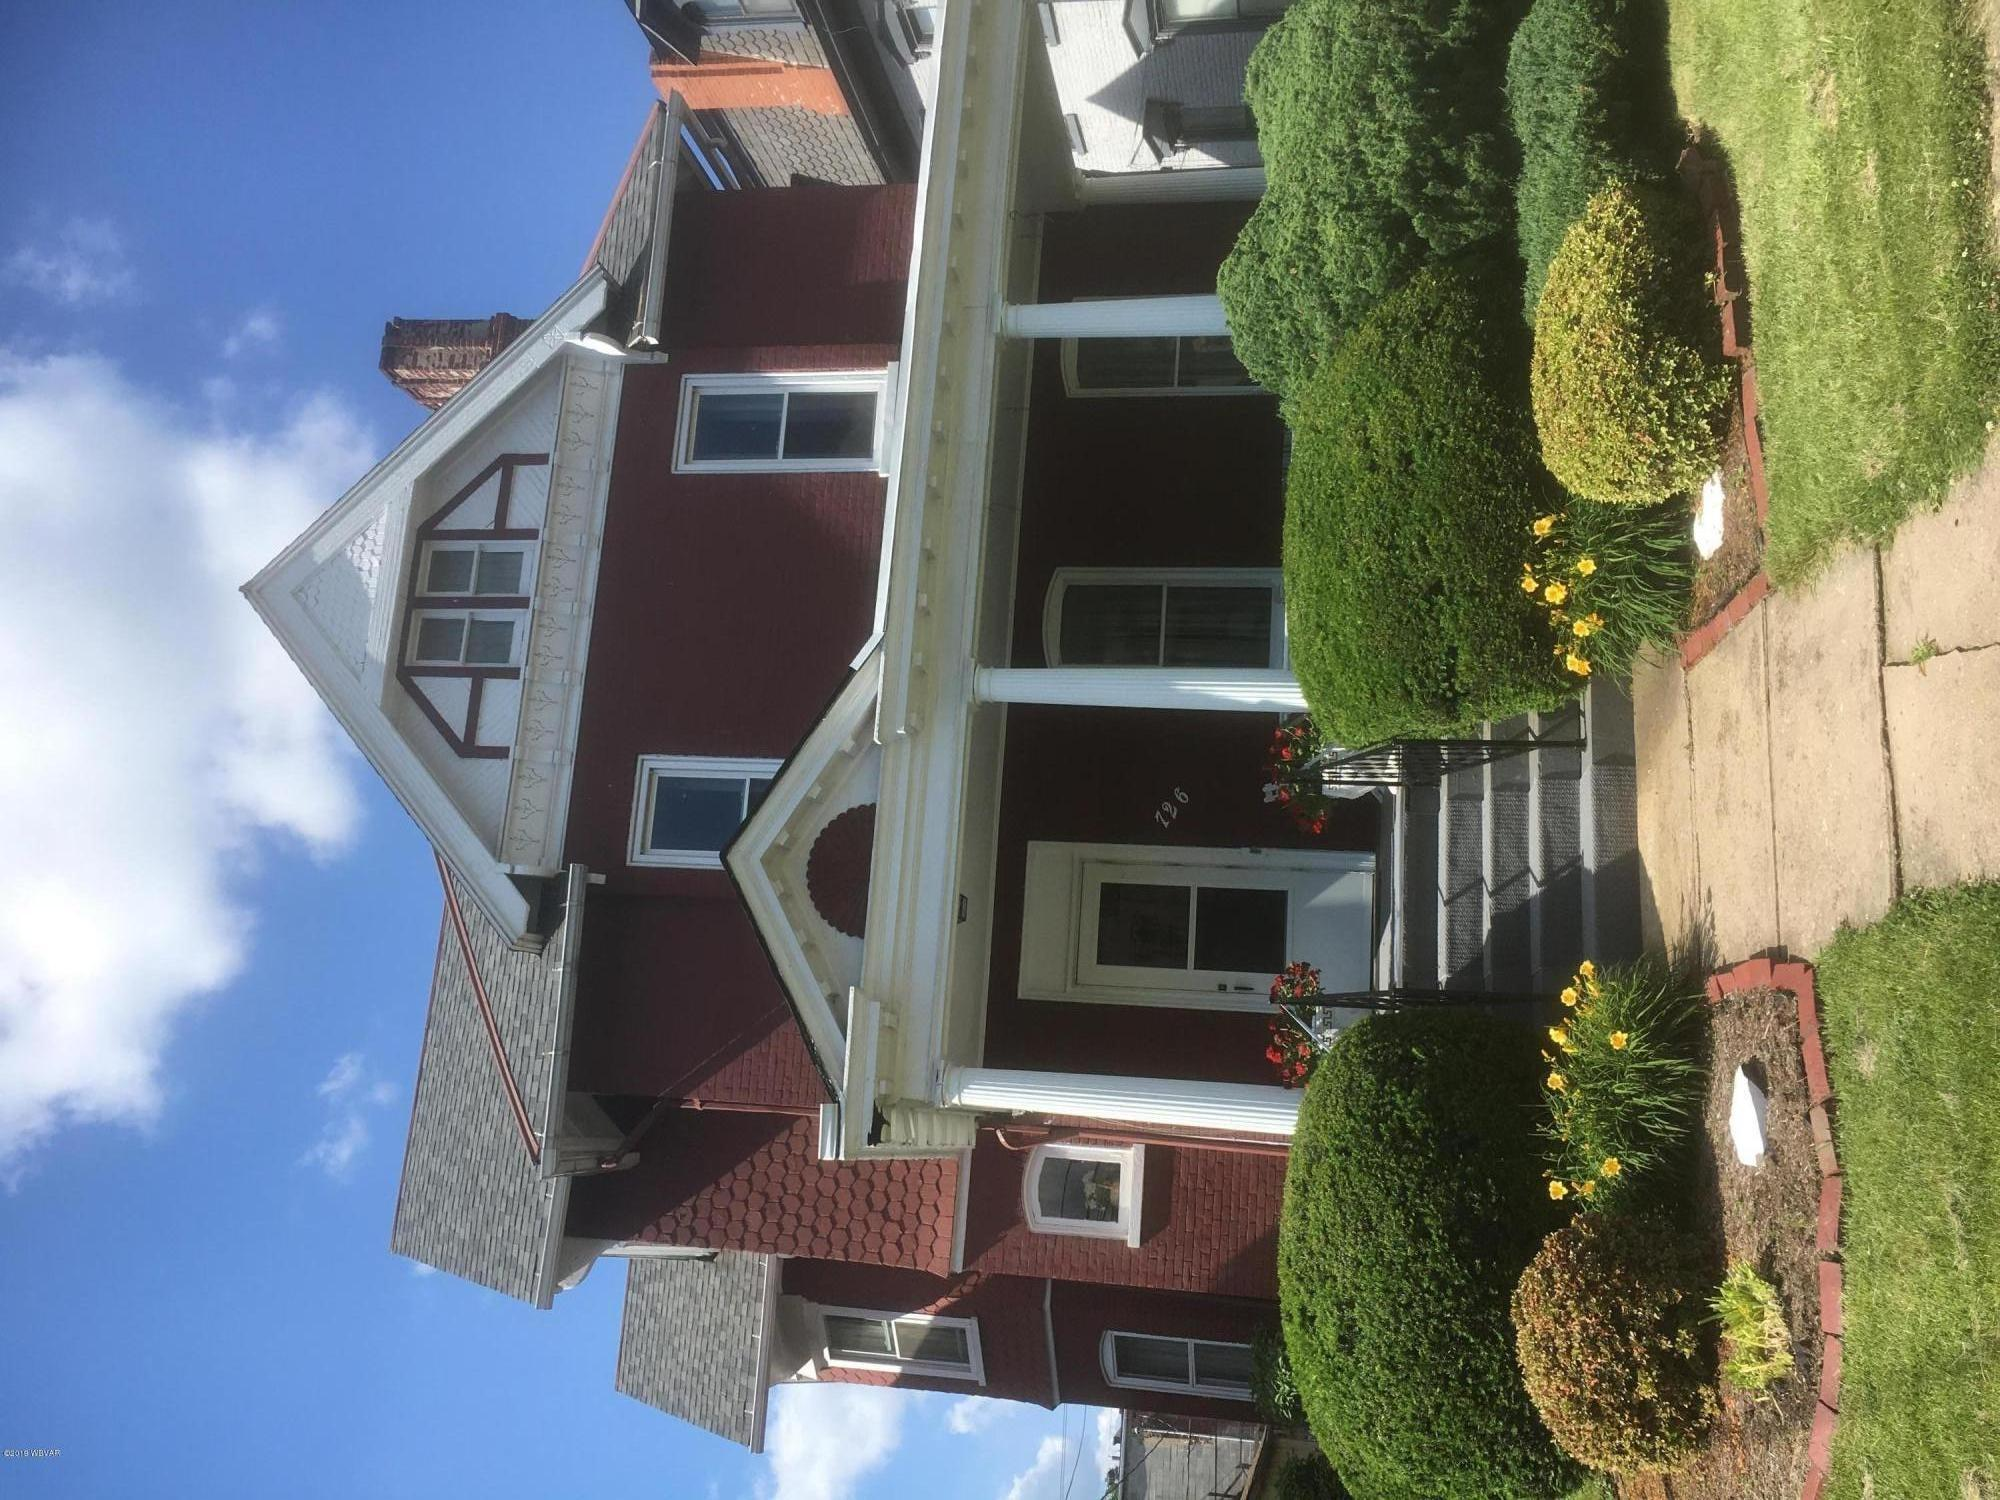 726 3RD STREET, Williamsport, PA 17701, 5 Bedrooms Bedrooms, ,2.5 BathroomsBathrooms,Residential,For sale,3RD,WB-88005